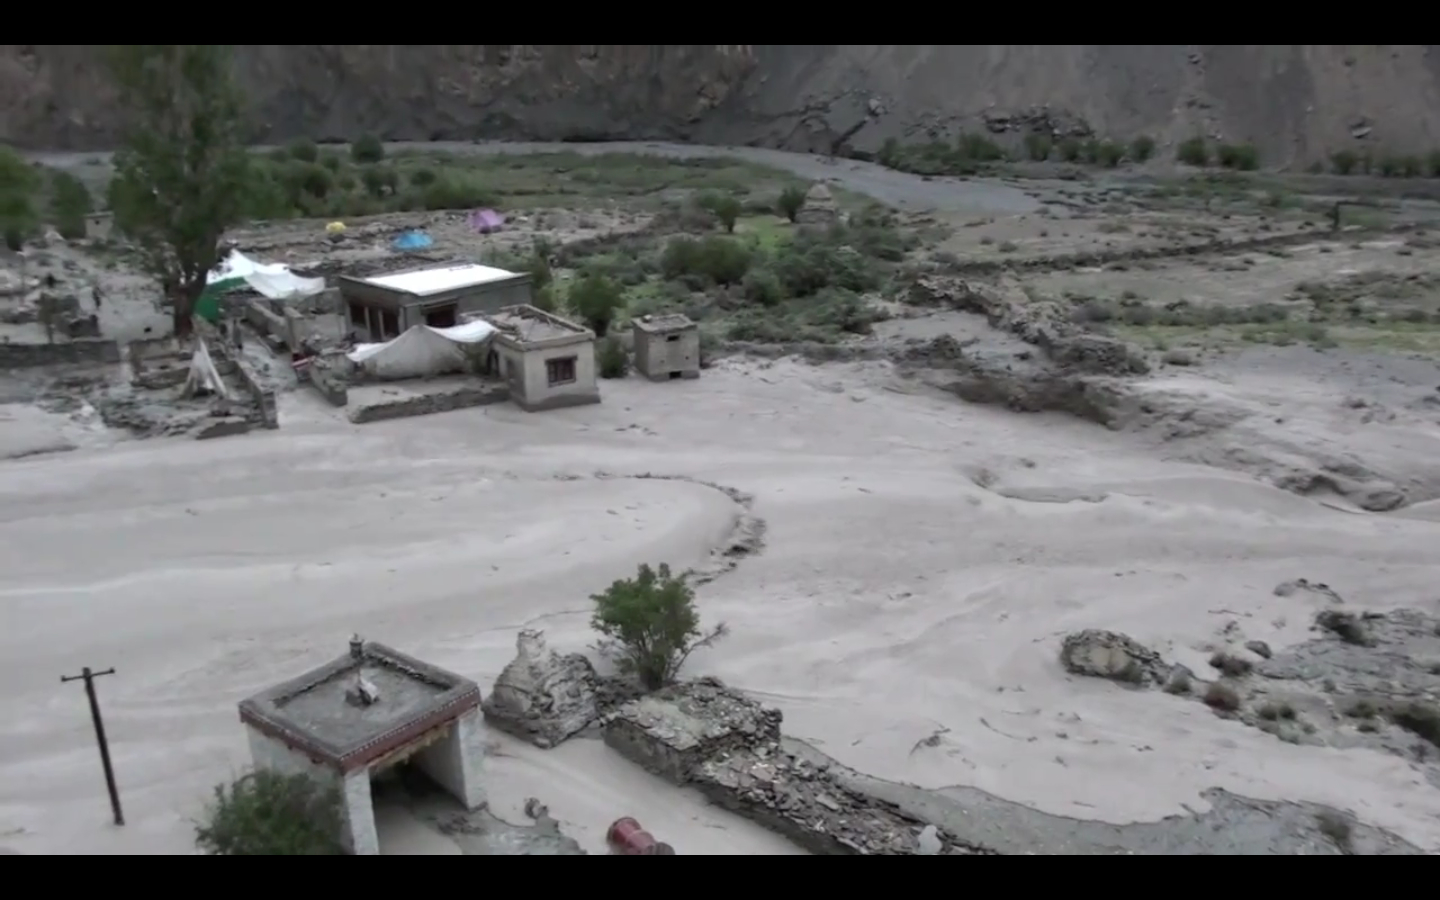 Lessons to Learn from the Kashmir Floods